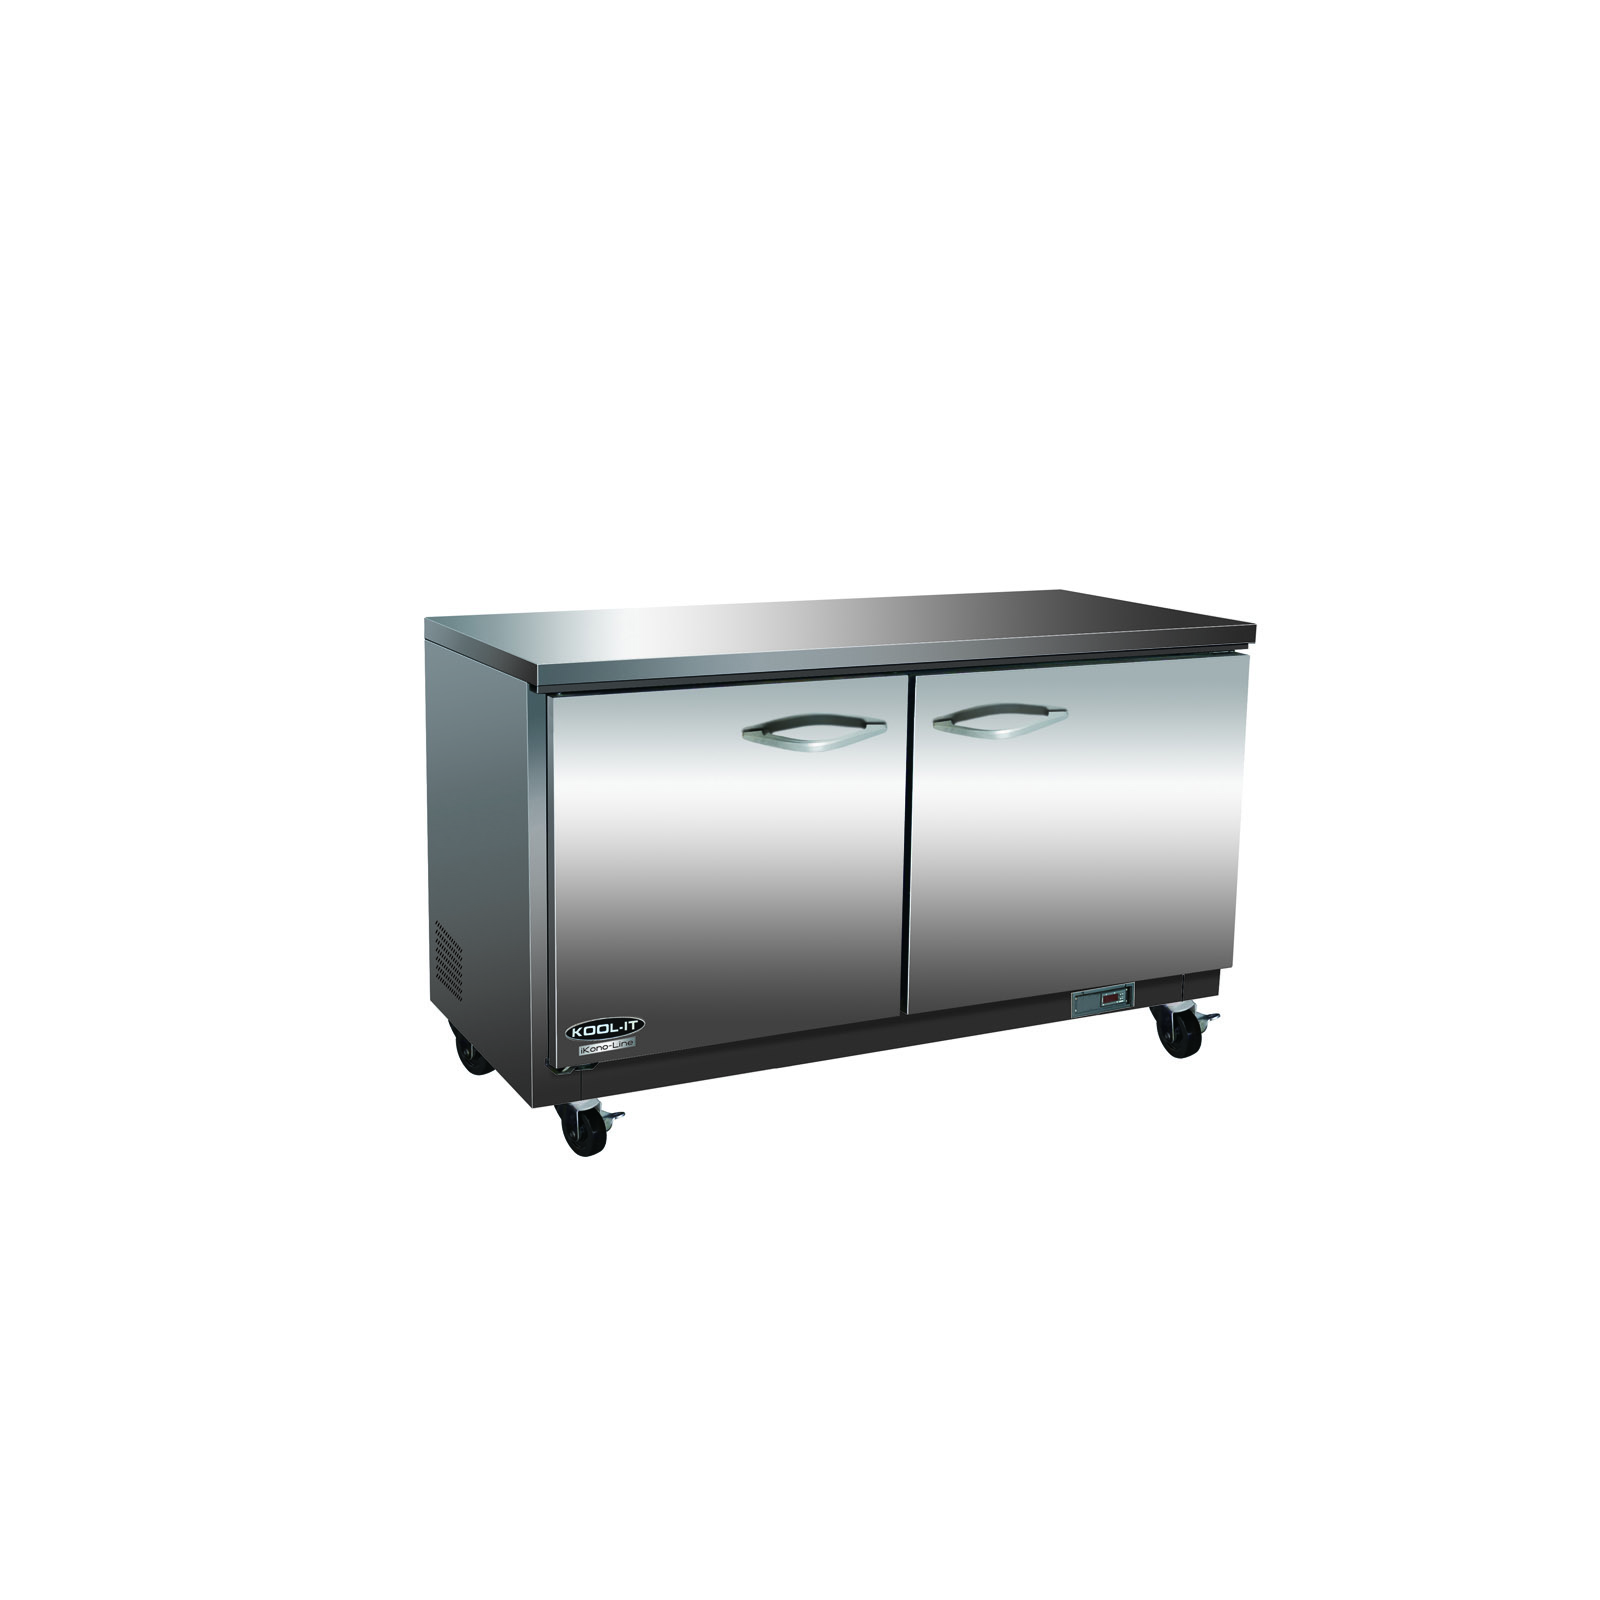 MVP Group LLC IUC48R-4D refrigerator, undercounter, reach-in